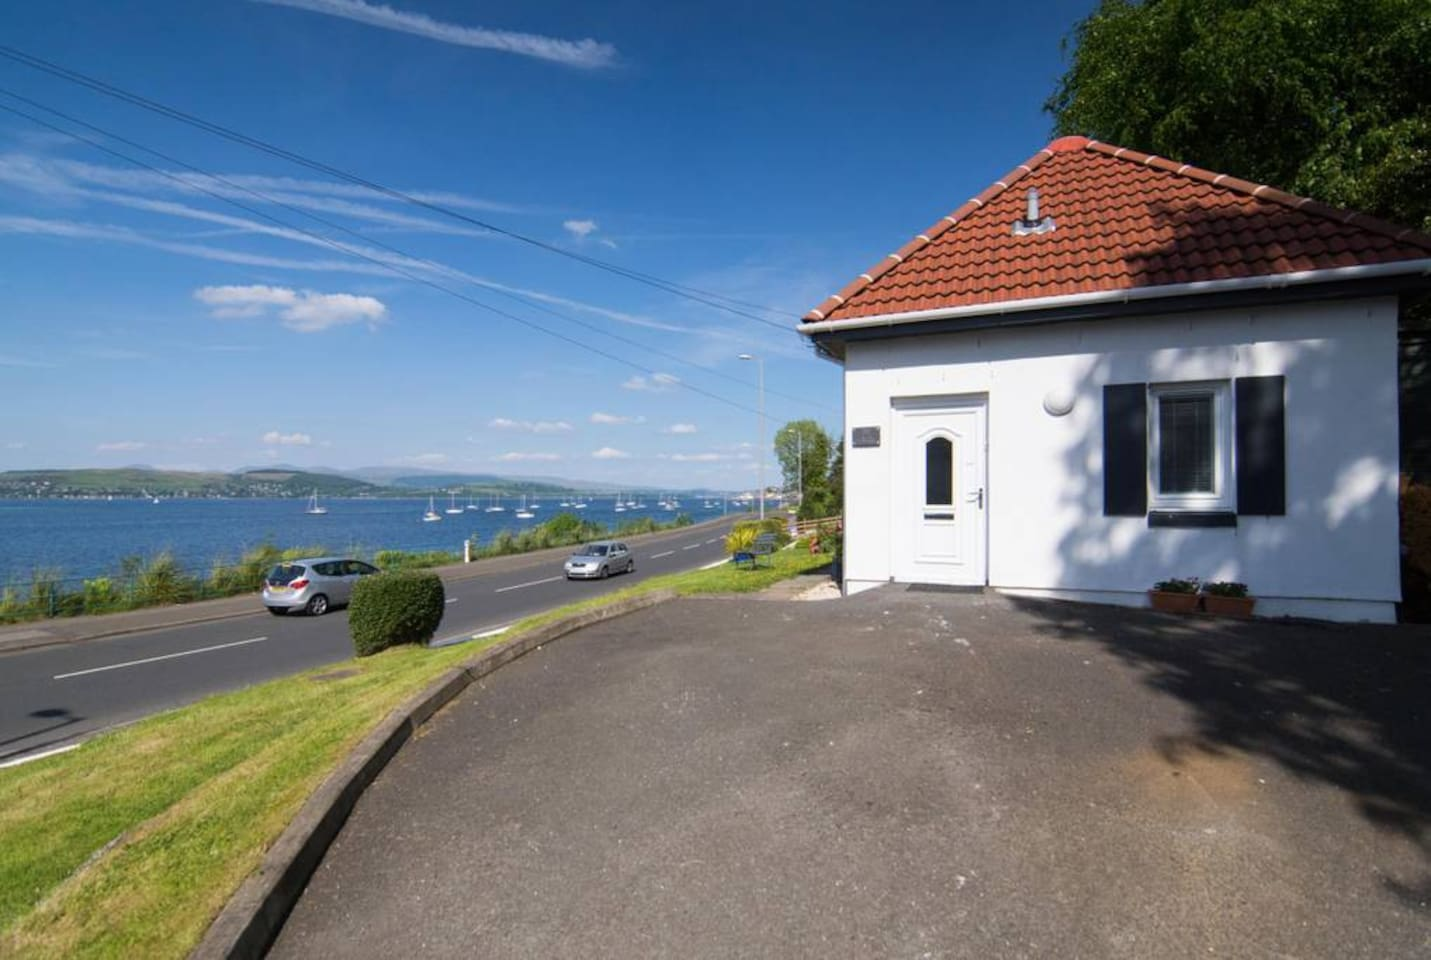 The Wee Cottage by the Ferry